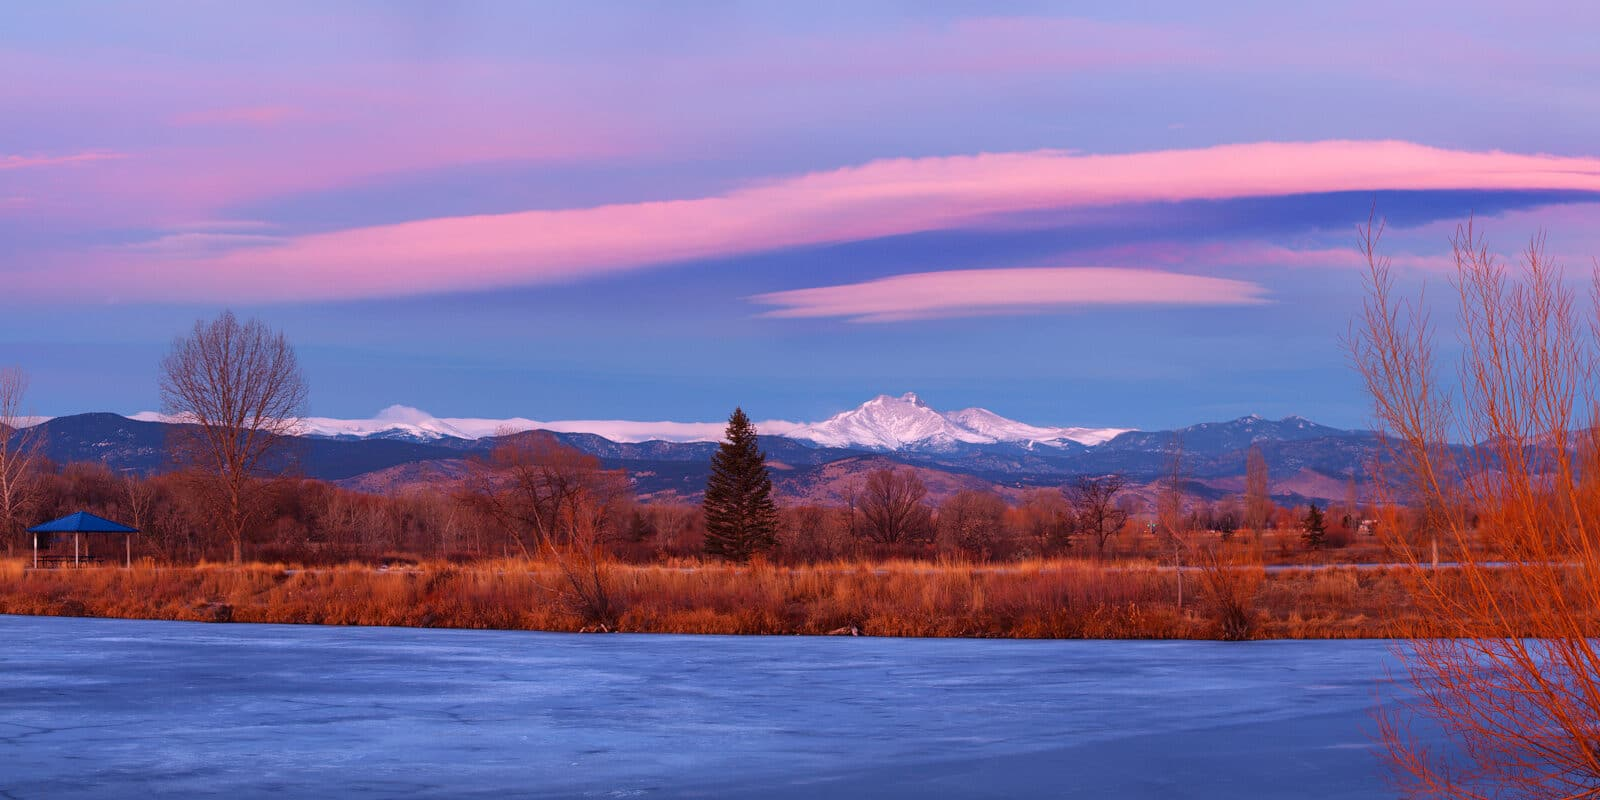 Image of Golden Ponds Park in Longmont, Colorado colored pink and blue